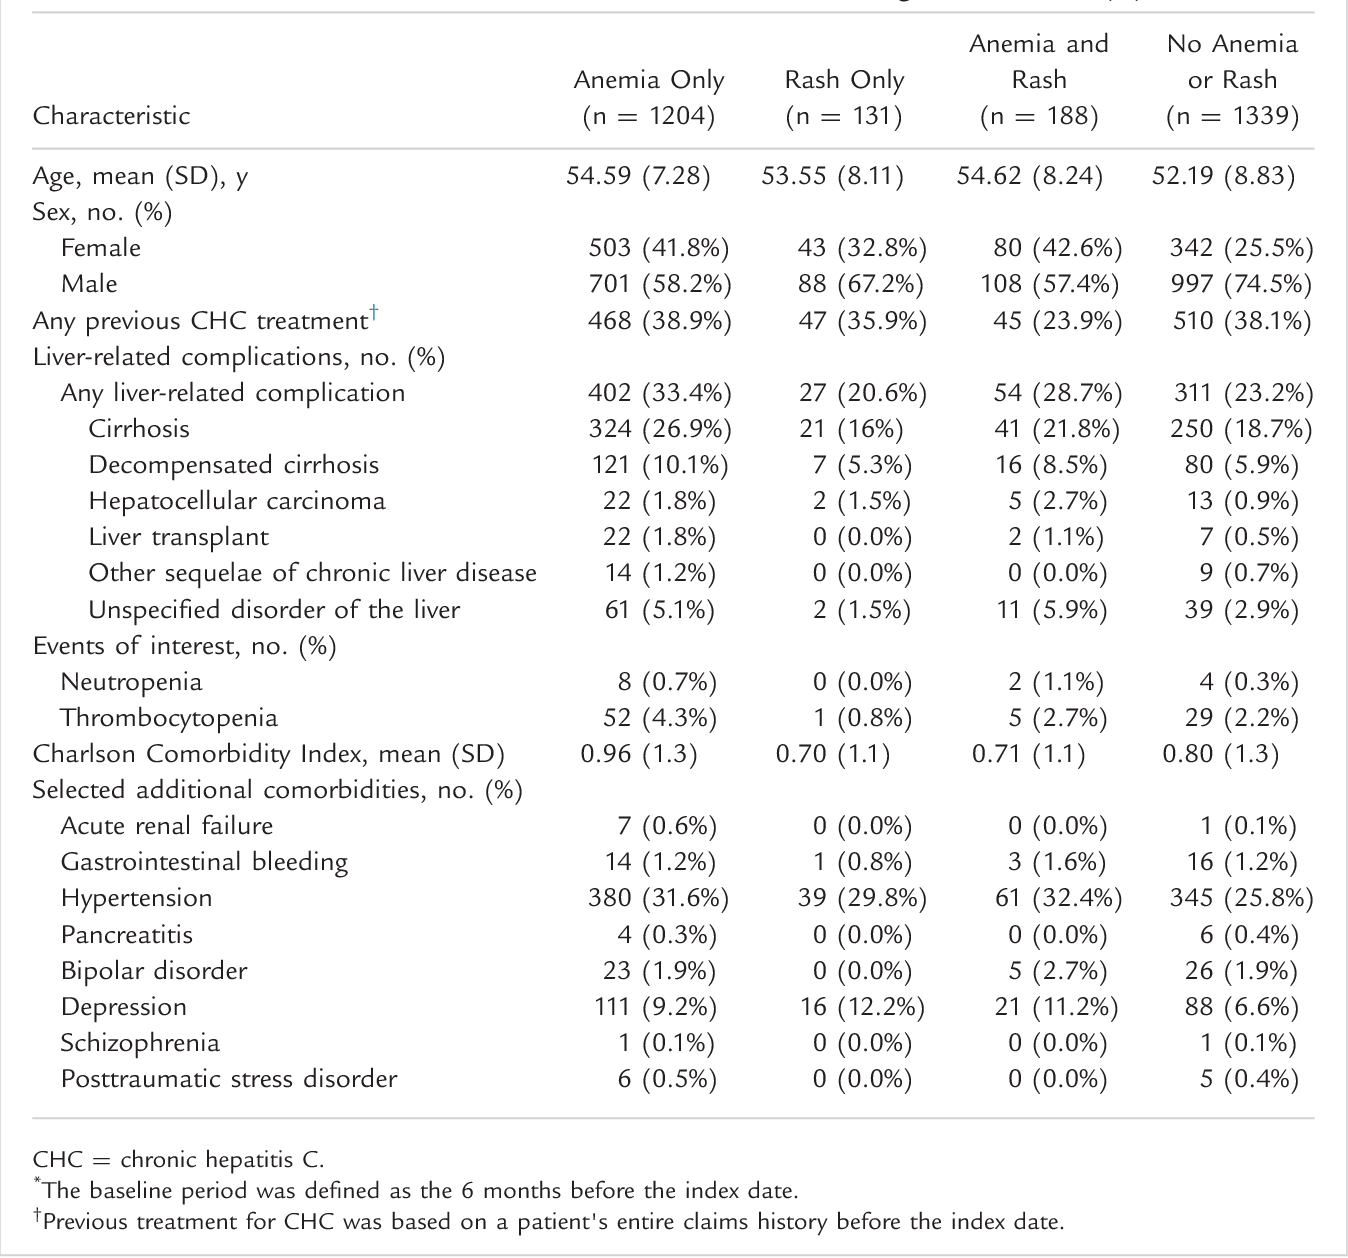 Costs and Resource Utilization Associated With Anemia and